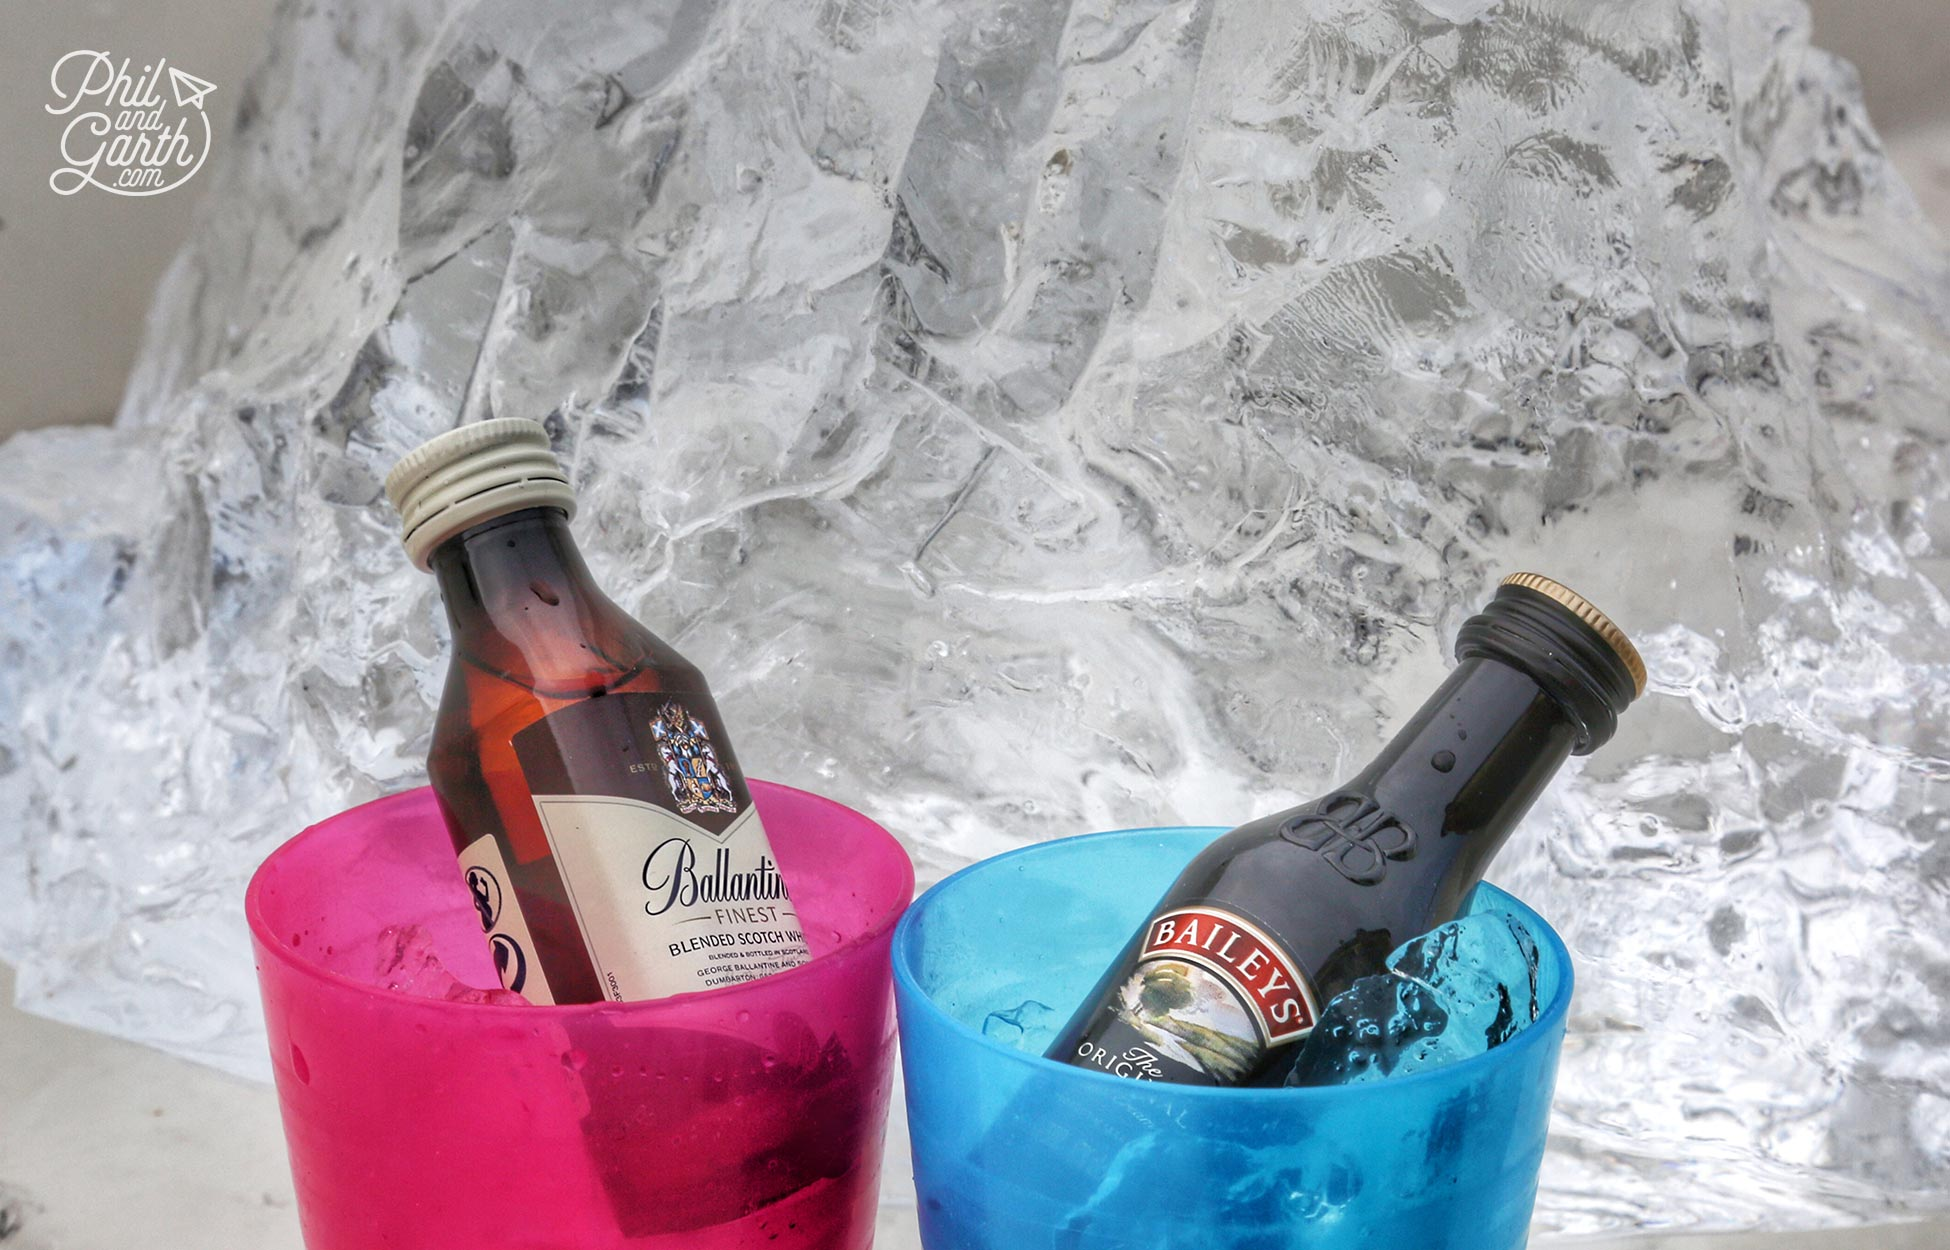 The only way to enjoy a Whisky and Baileys is with clear pure ice chipped off the icebergs - magical!